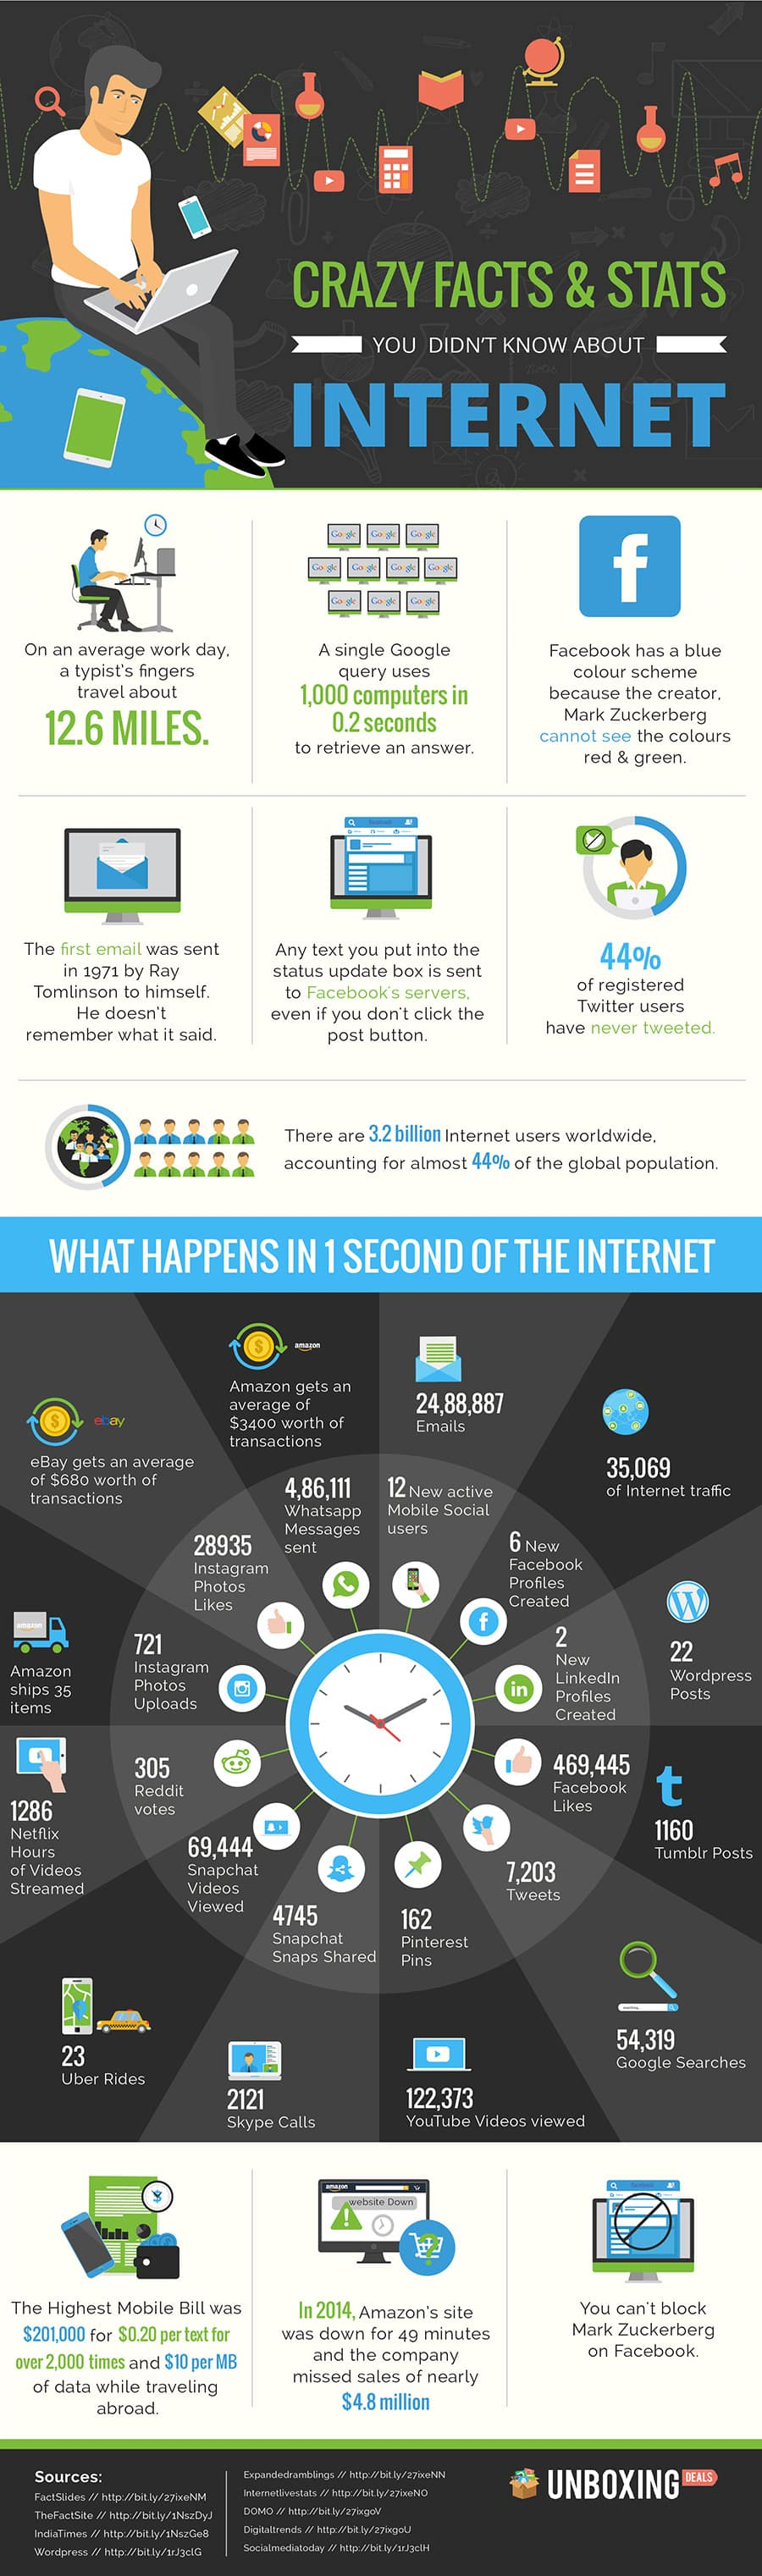 Crazy Facts & Stats You Didn't Know About the Internet